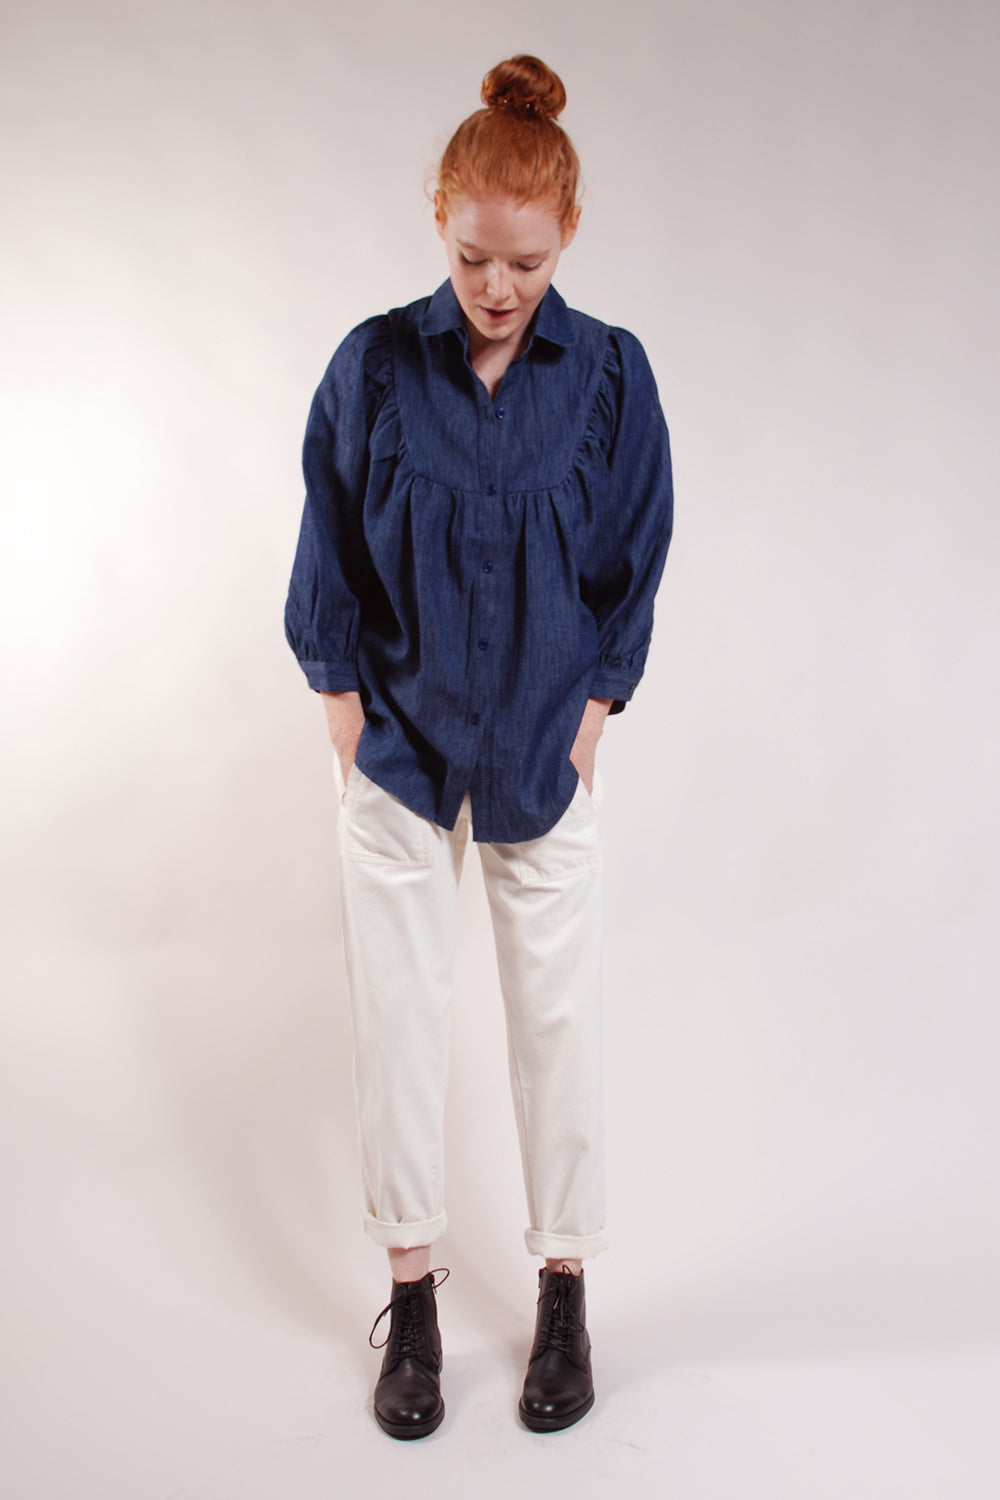 Gathered top, bracelet length sleeves, front and back yokes. Super soft washed denim. 100% Cotton.